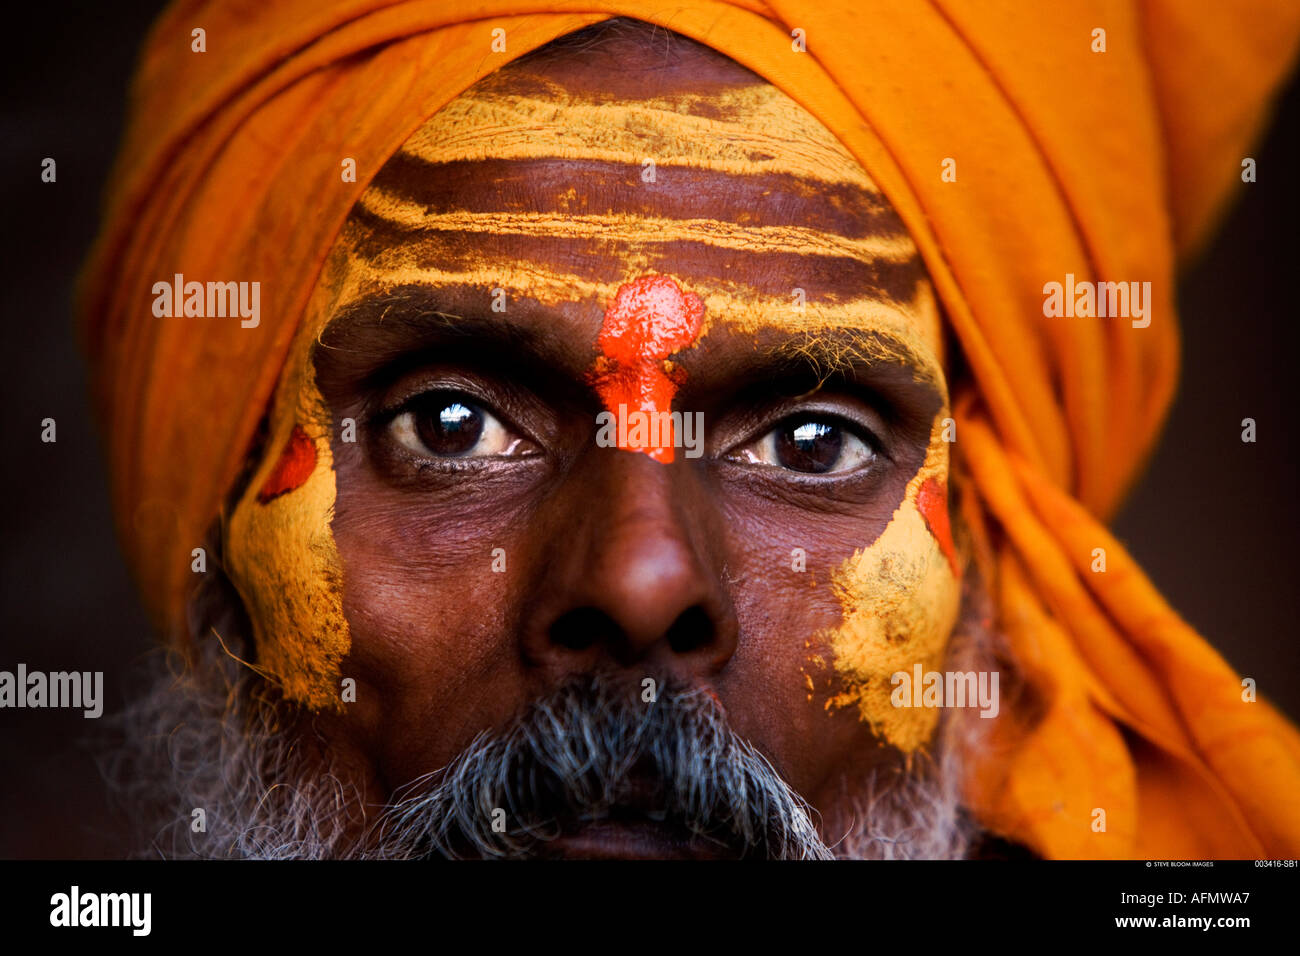 Saint homme Sadhu Varanasi Inde Photo Stock